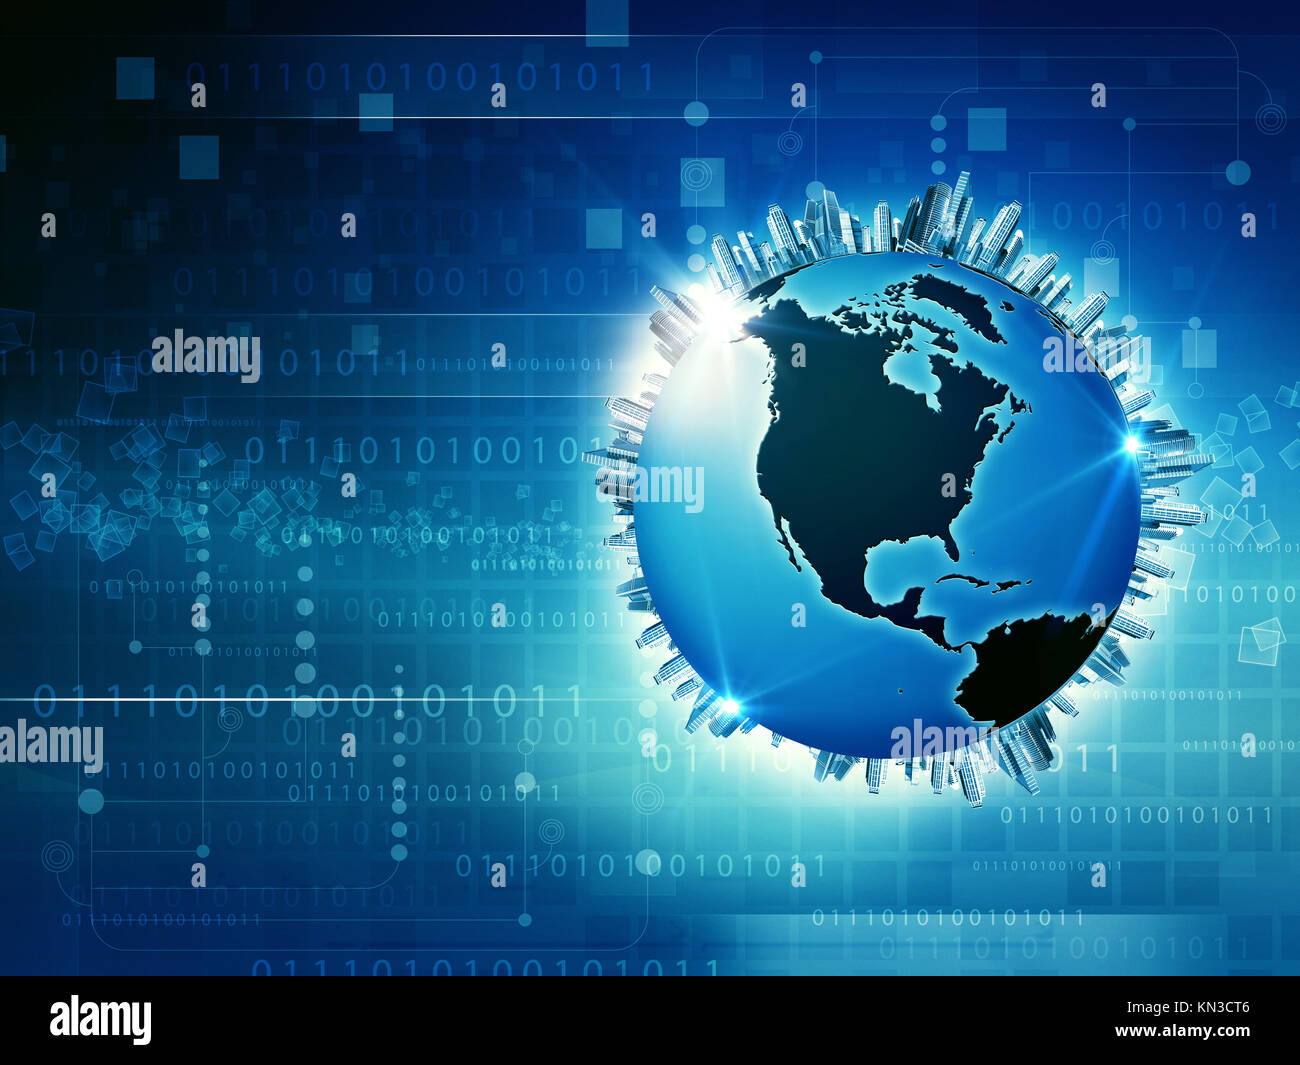 Global Media and Information Society, abstract techno backgrounds. - Stock Image